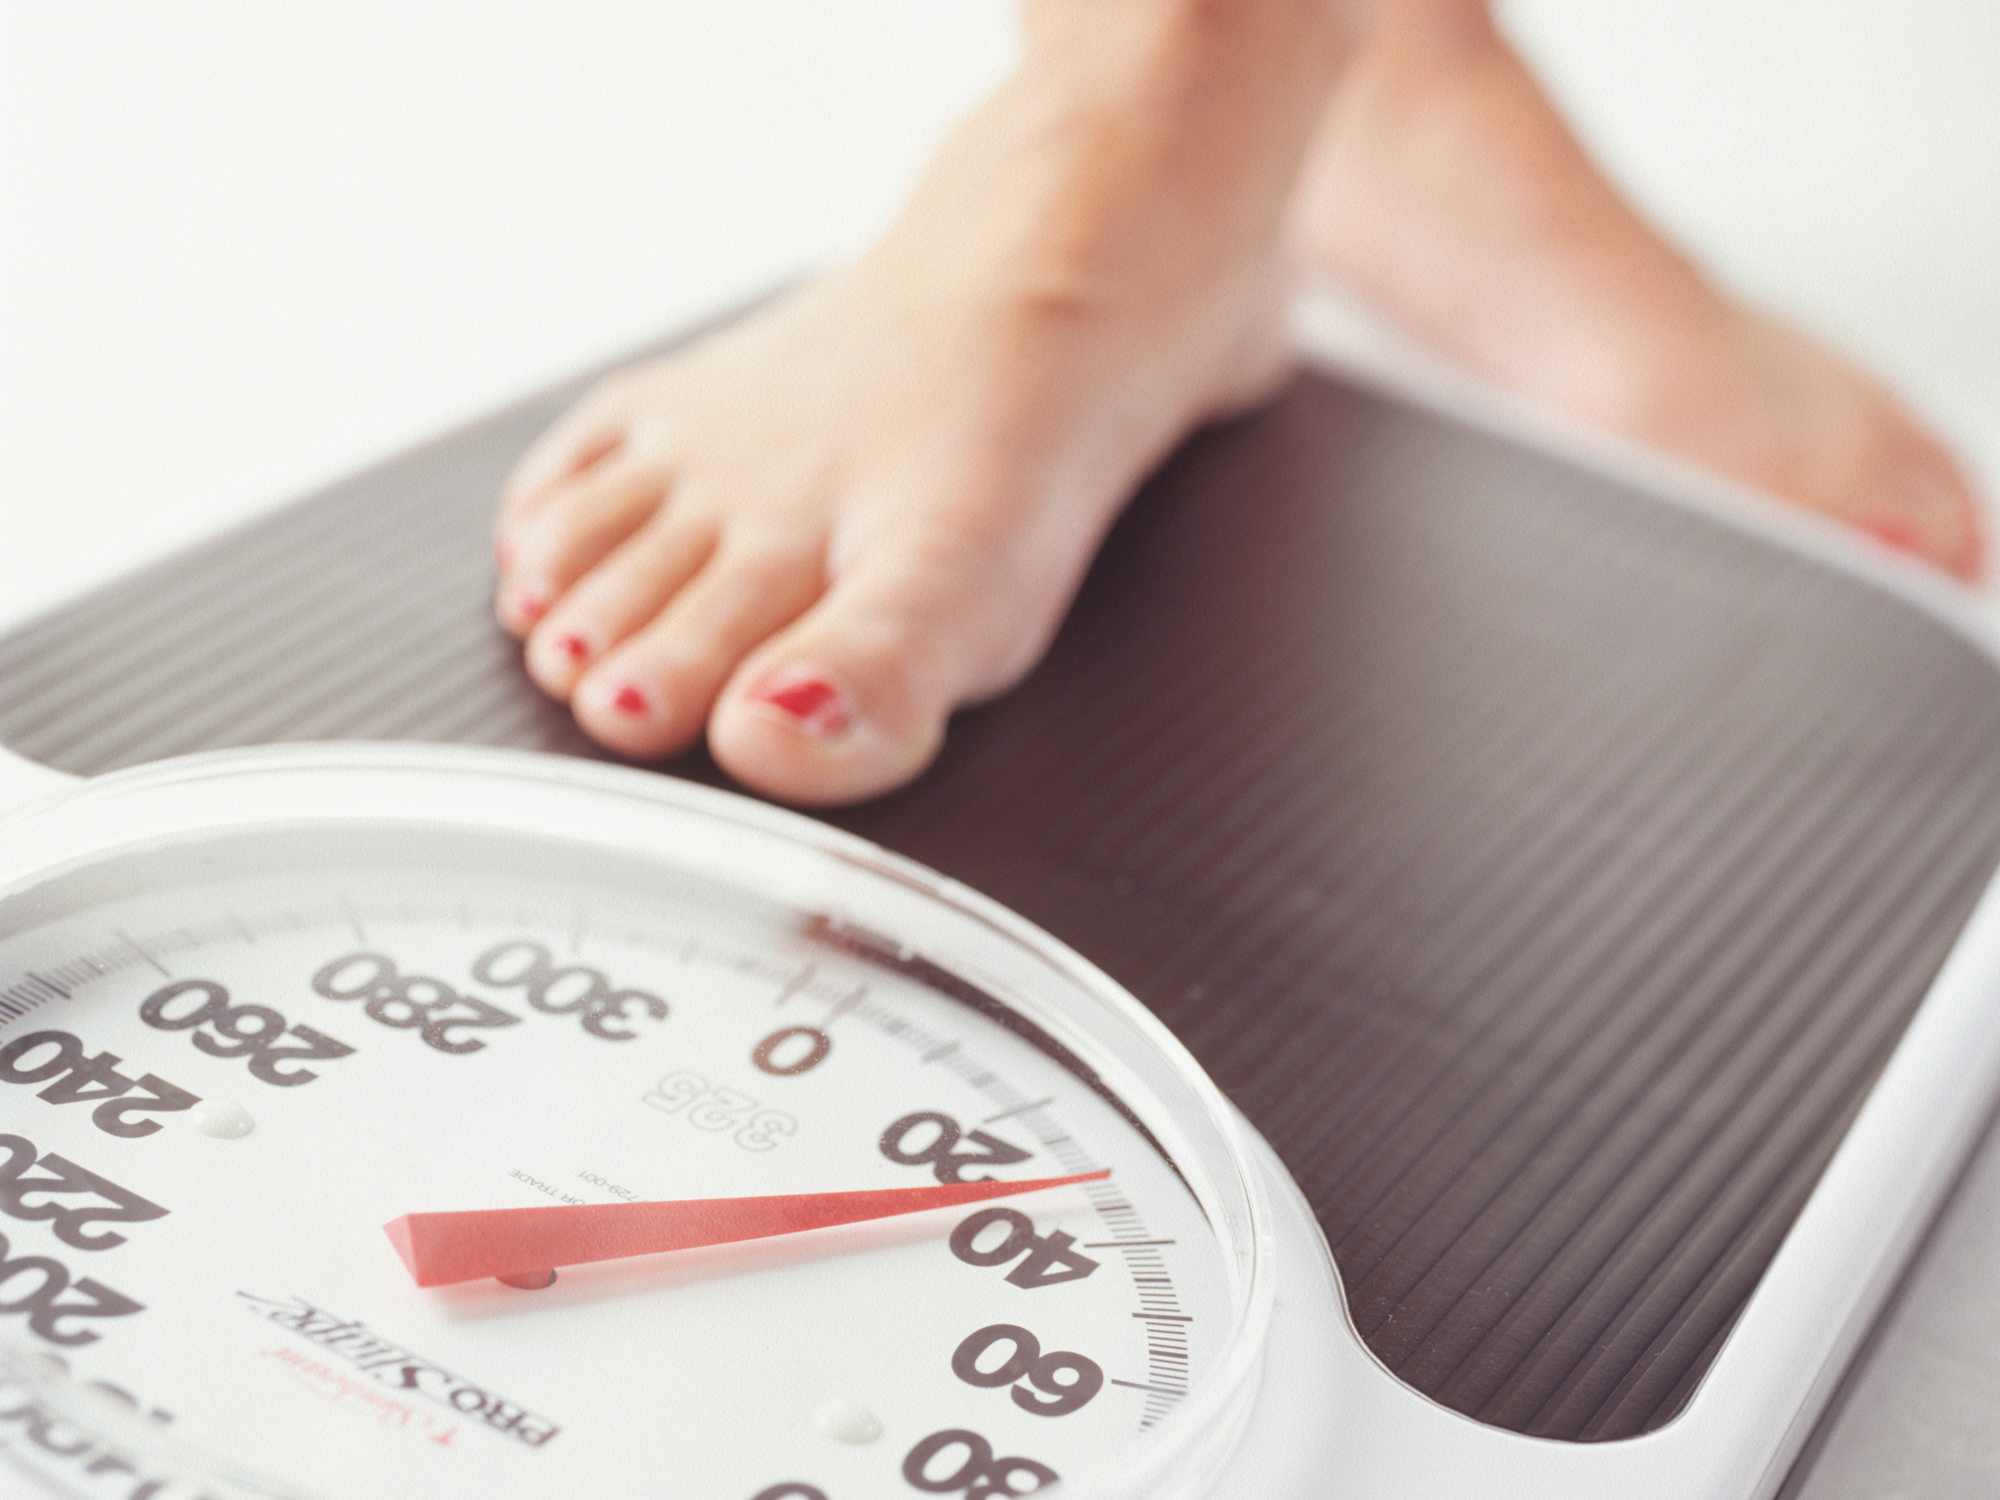 Genetics or exercise: Which wins at weight loss?